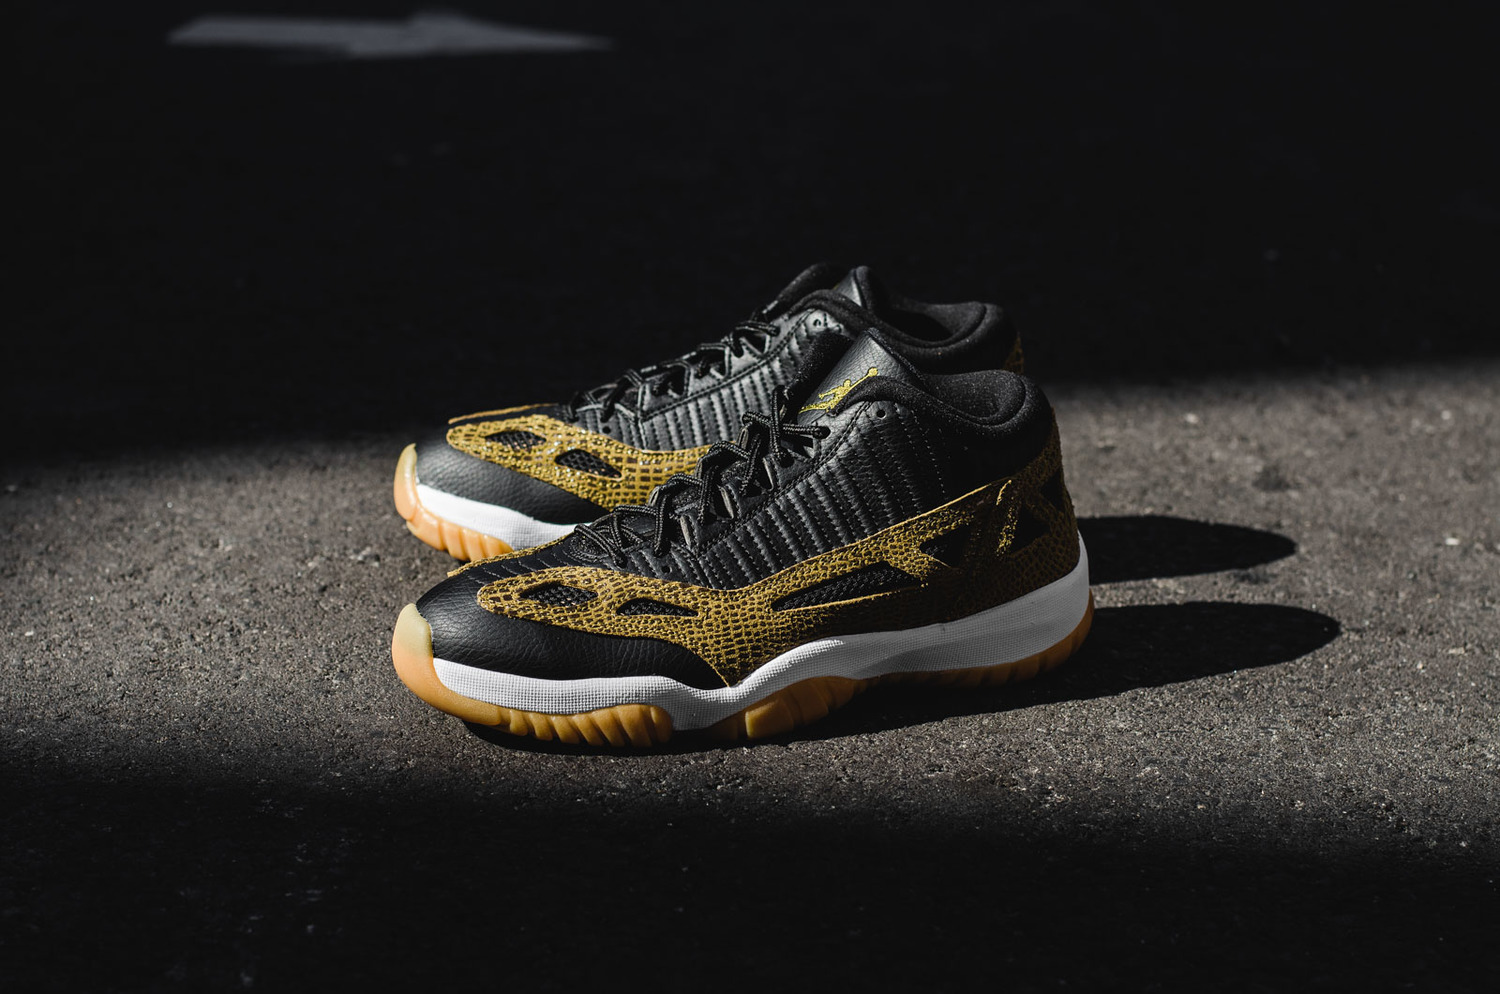 9a1d8aacc3e990 Are You Ready For The Air jordan 11 Low IE